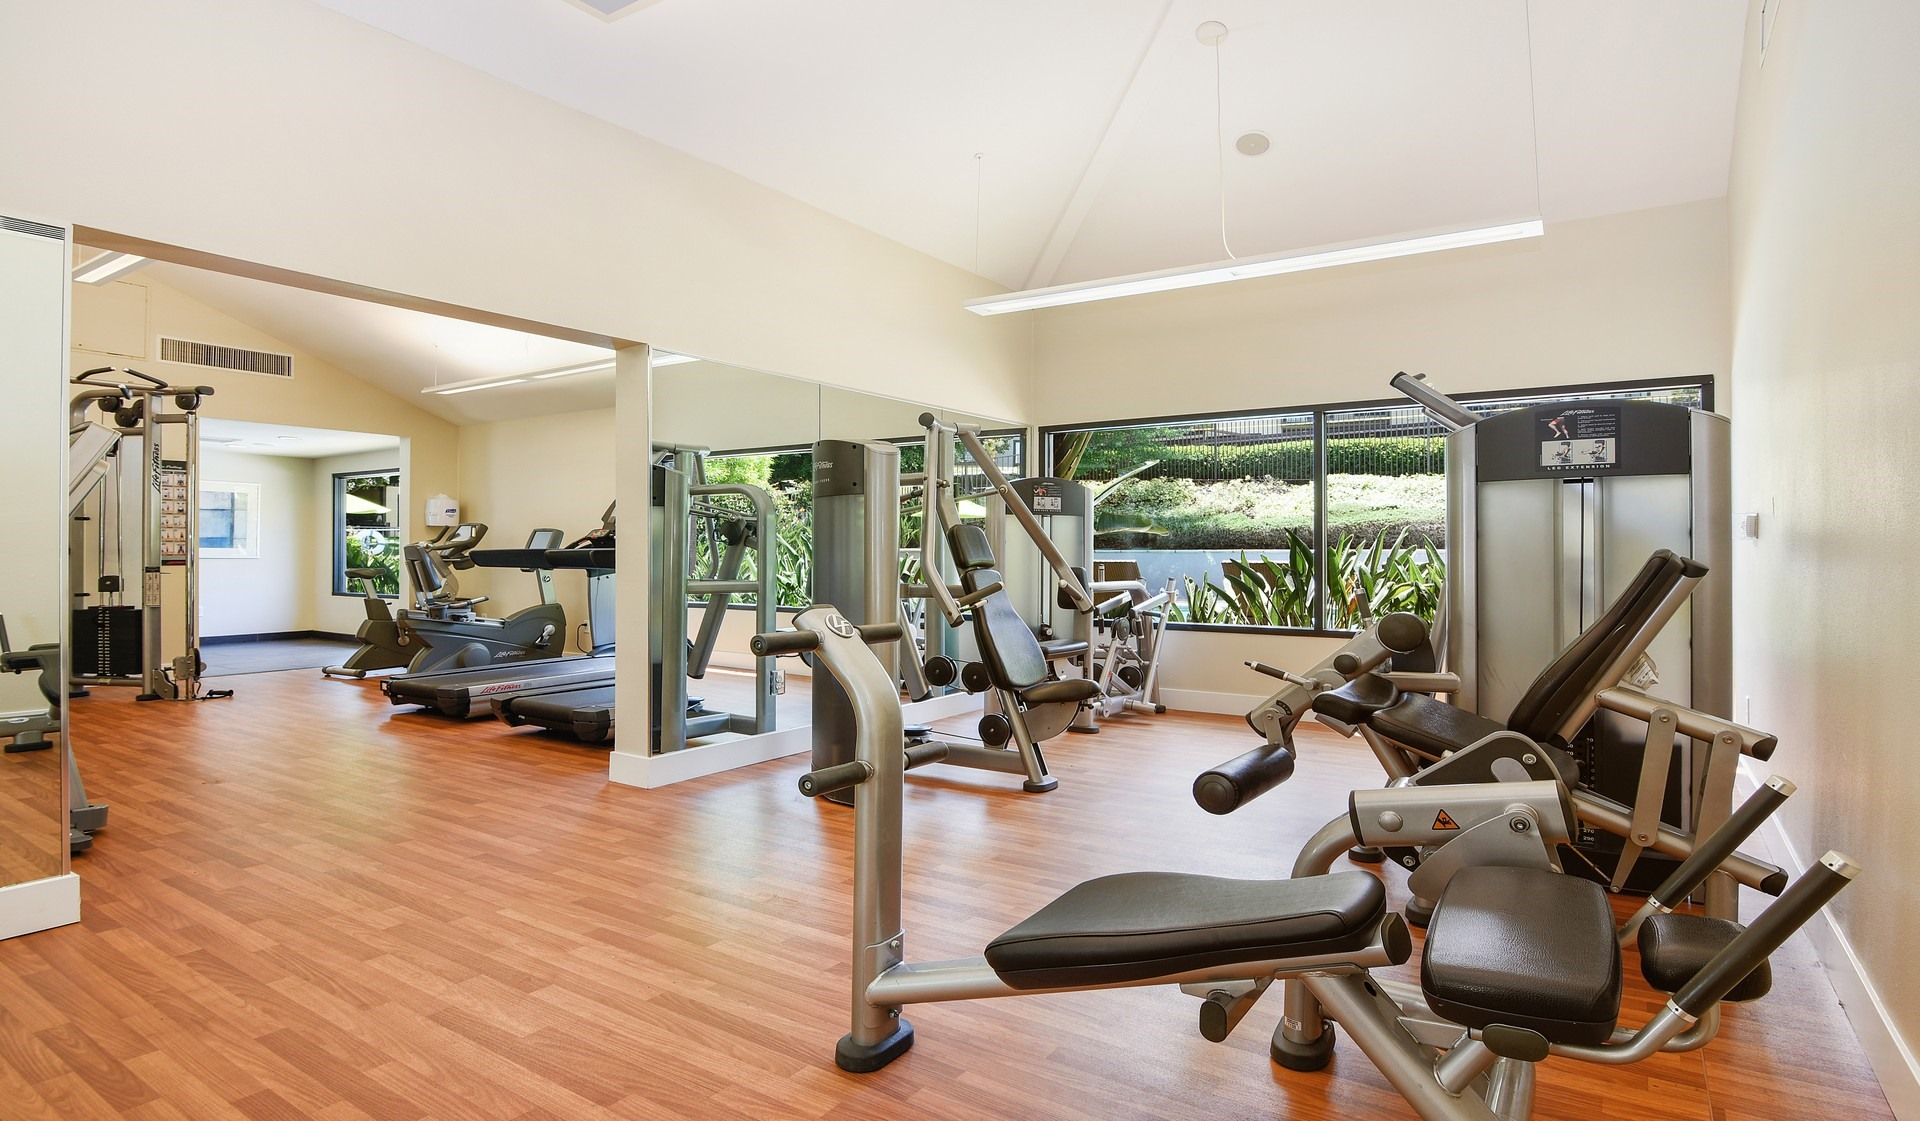 Hidden Cove Apts - gym